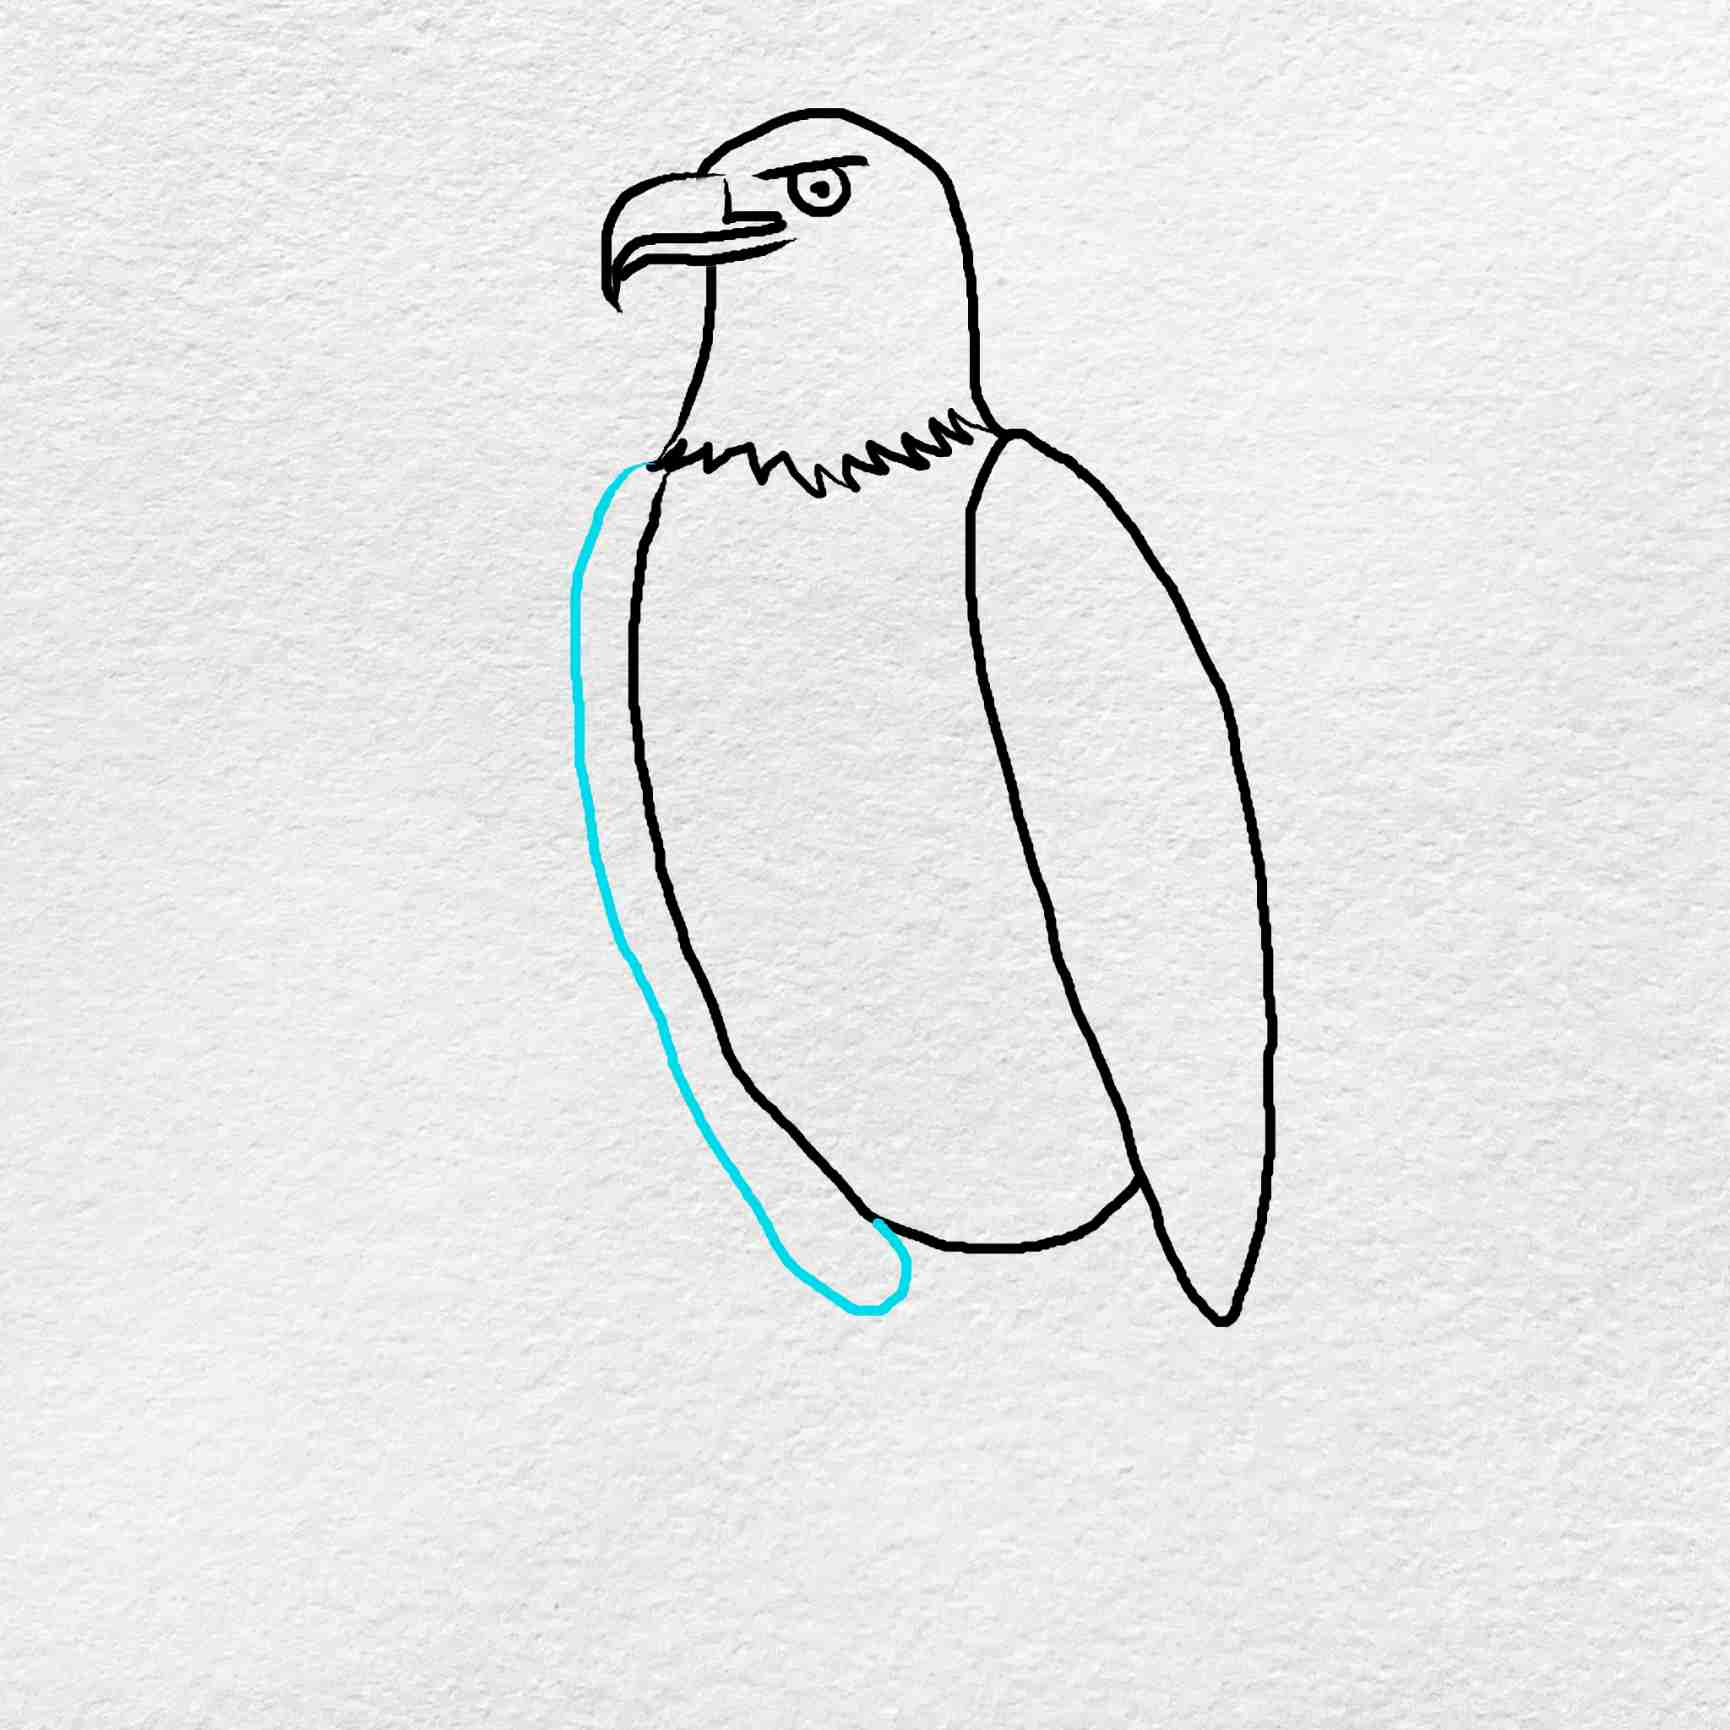 How To Draw An Eagle Easy: Step 5